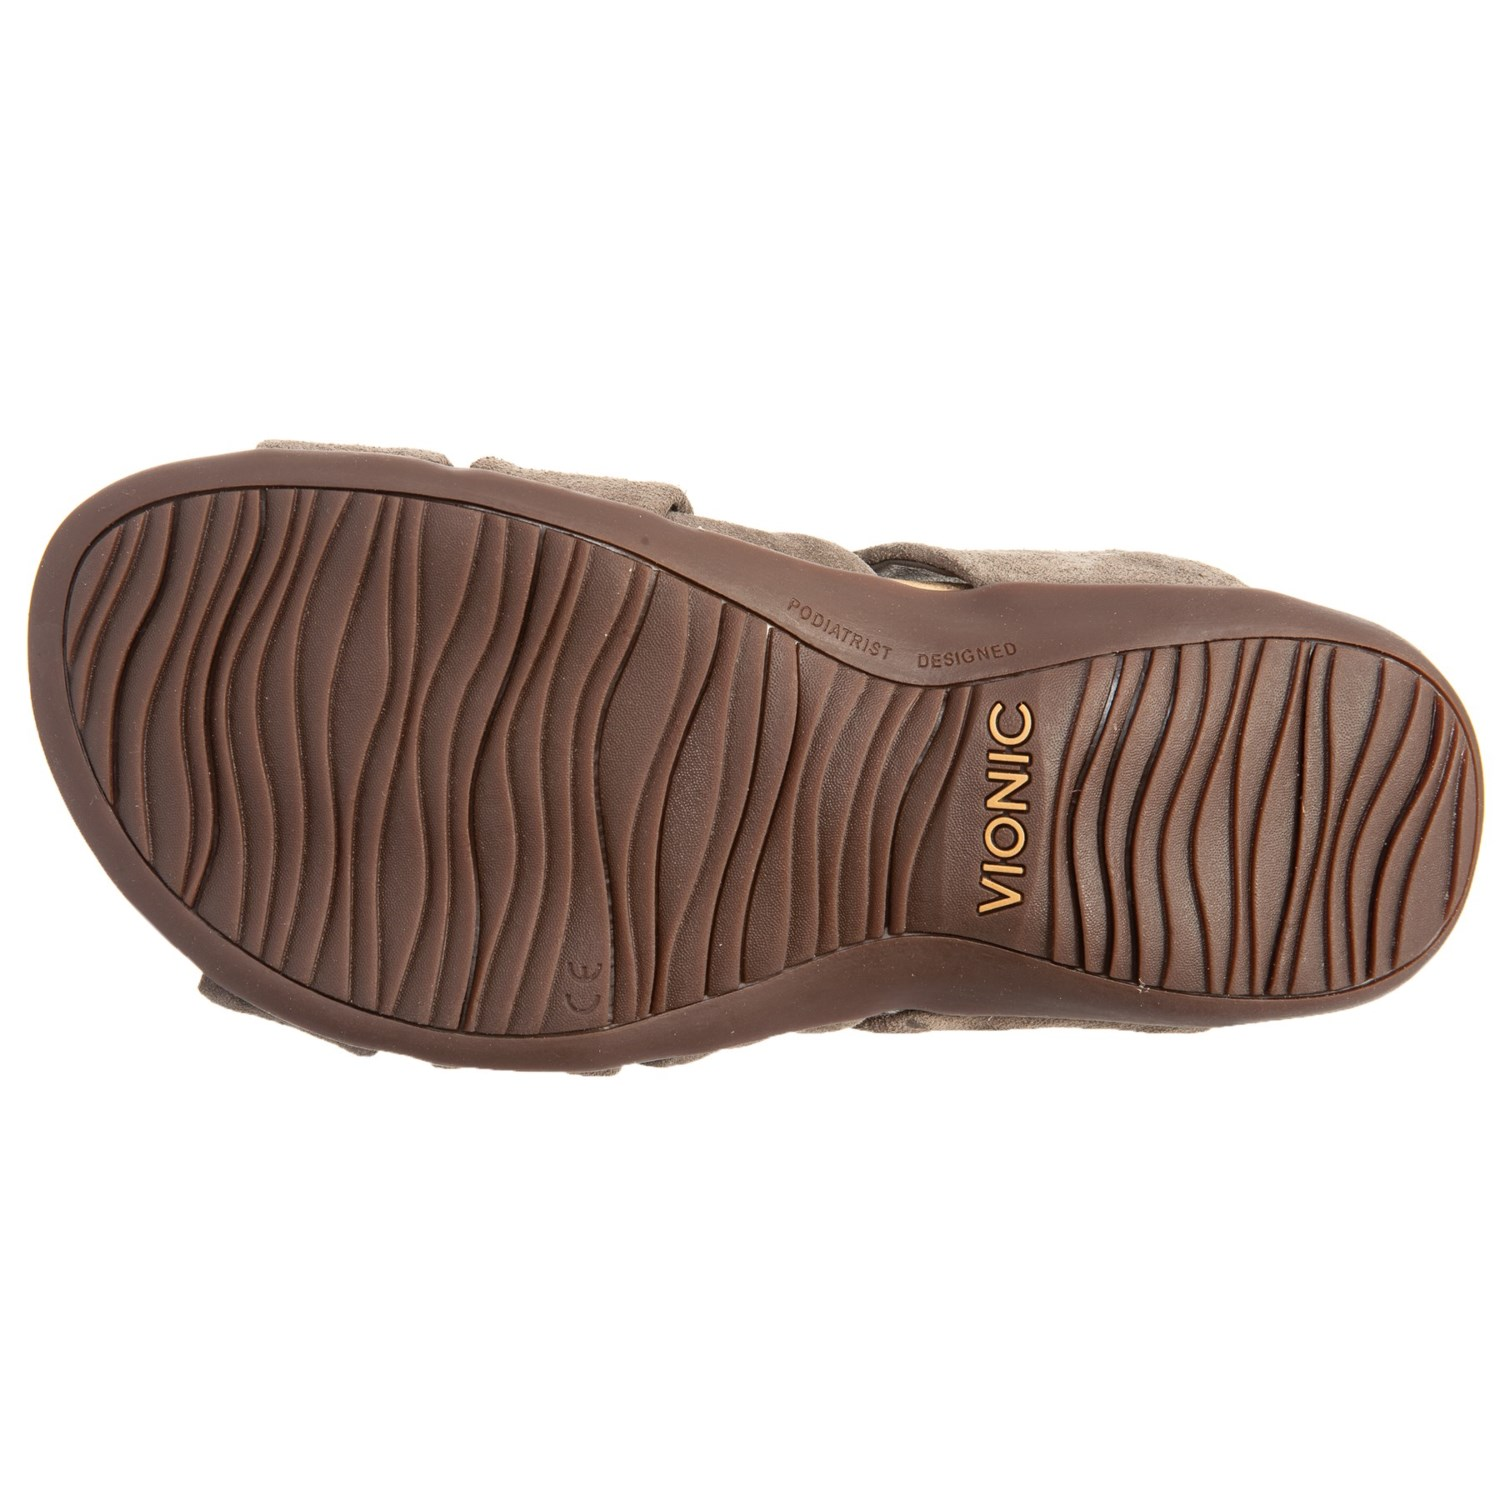 dcc7b69c17e0 Vionic Orthaheel Technology Juno Slide Sandals (For Women) - Save 20%